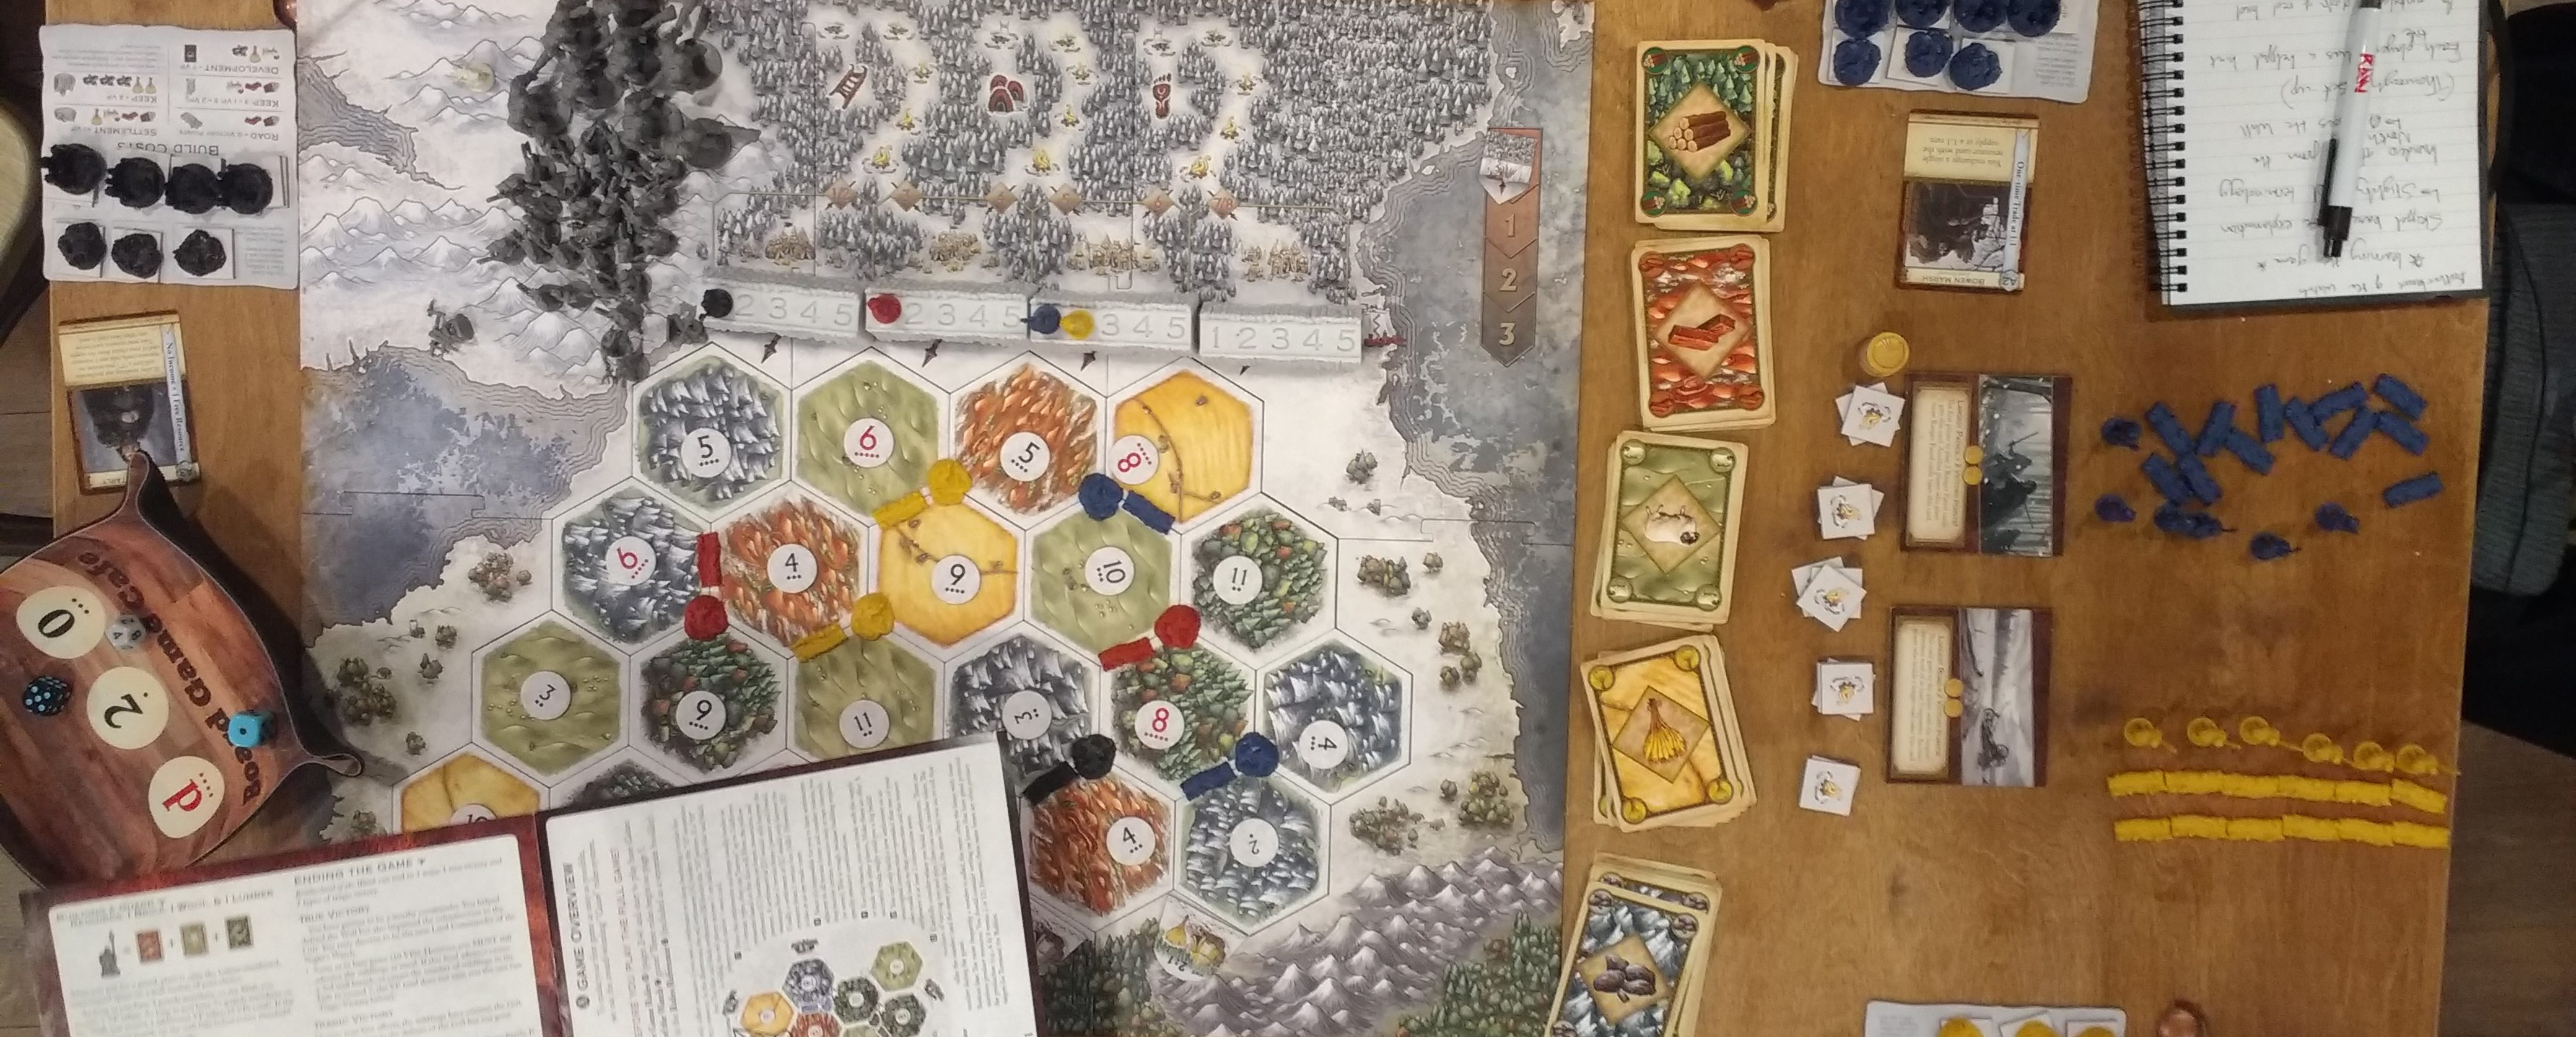 A Game of Thrones Catan, Brotherhood of the Watch